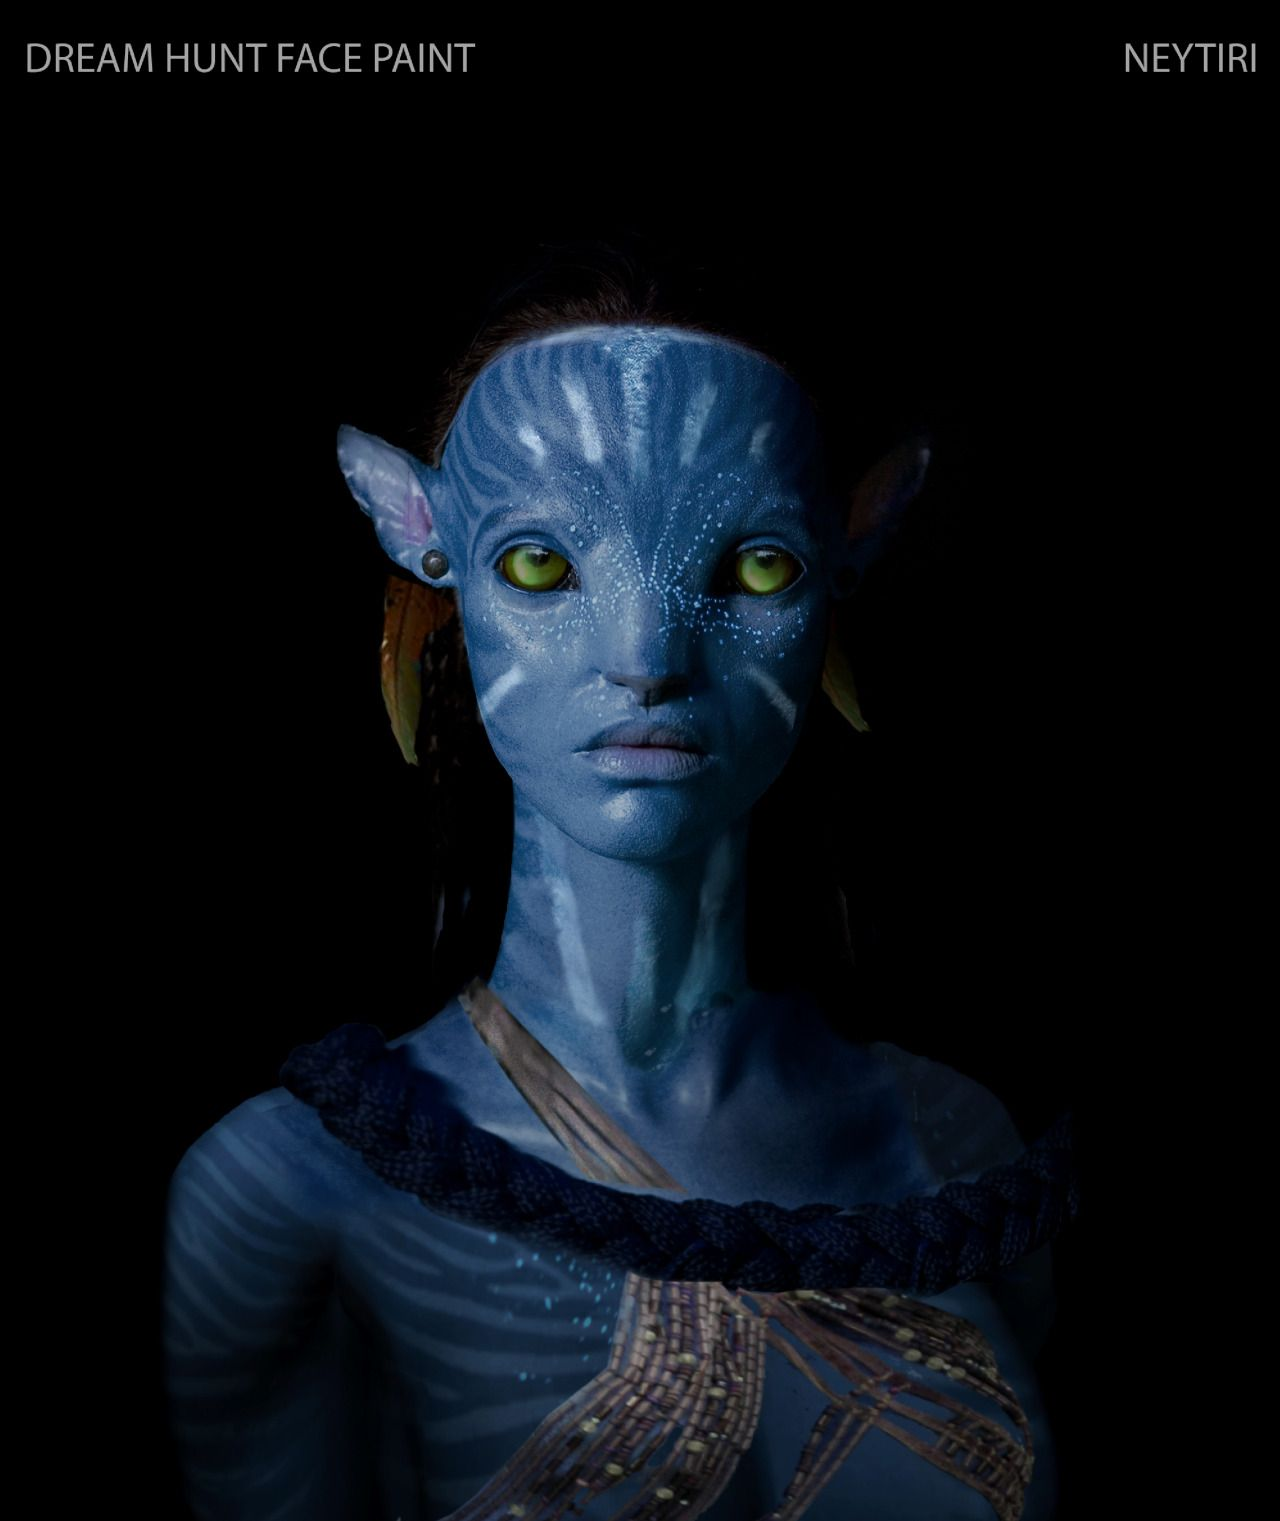 Avatar 3: Neytiri Face Paint Concept Art.